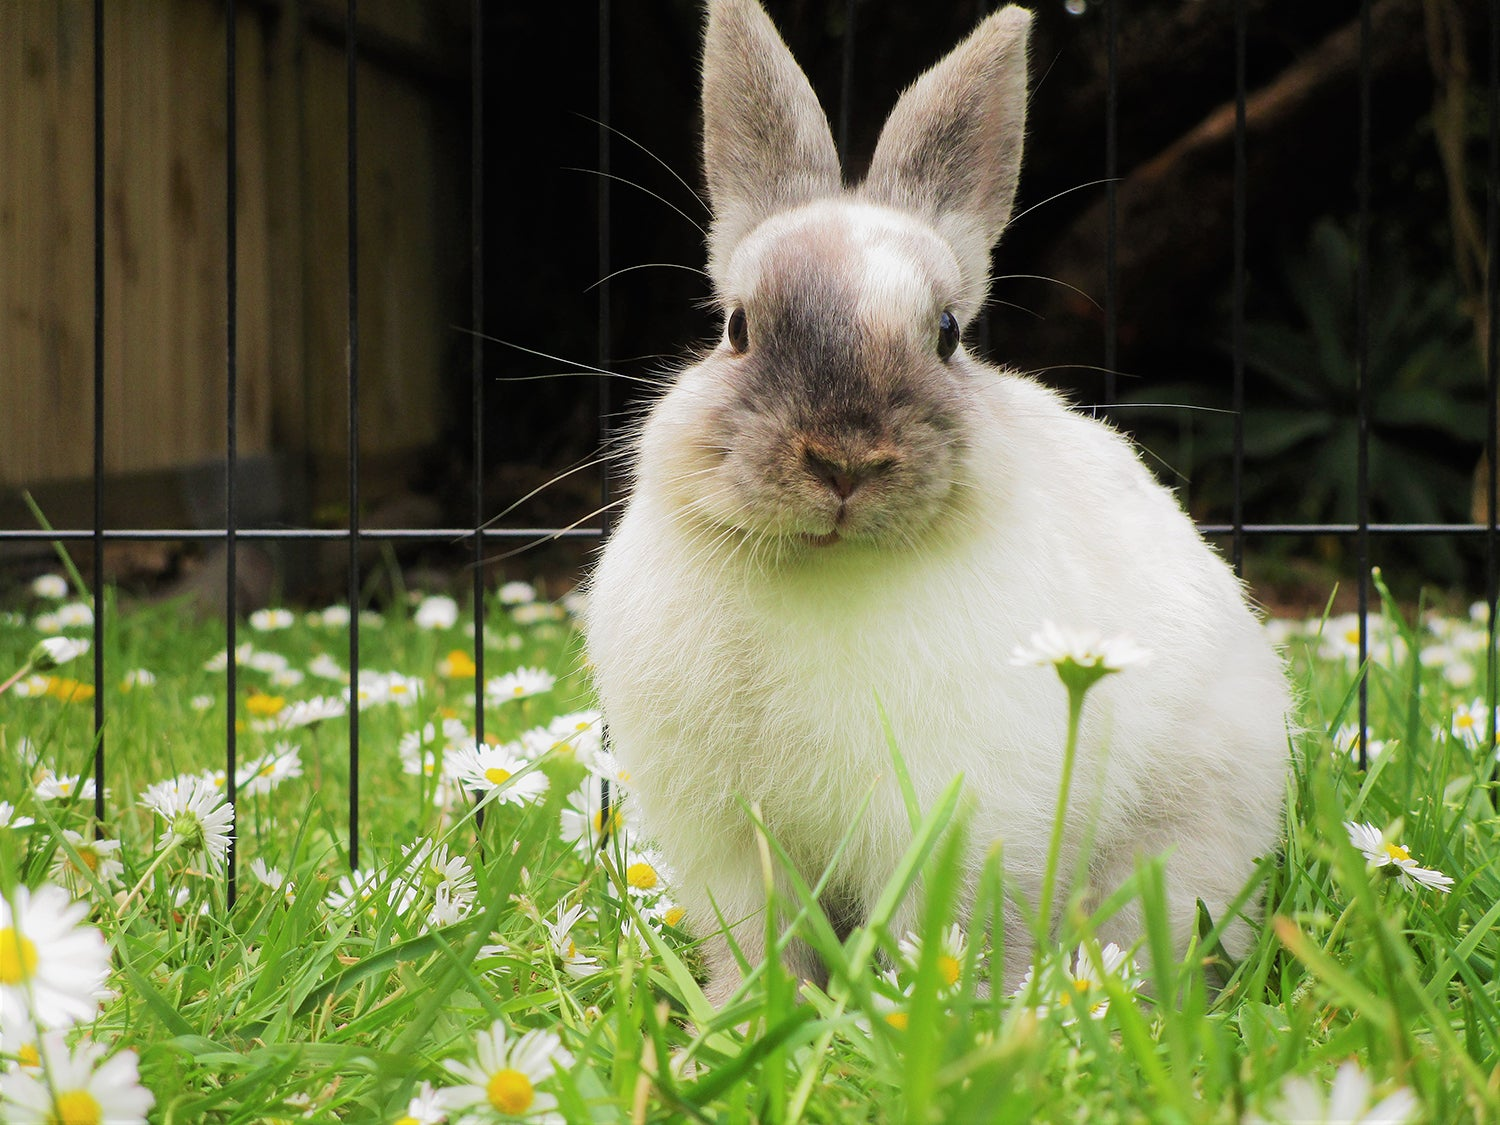 Bunny in small animal playpen for pets.